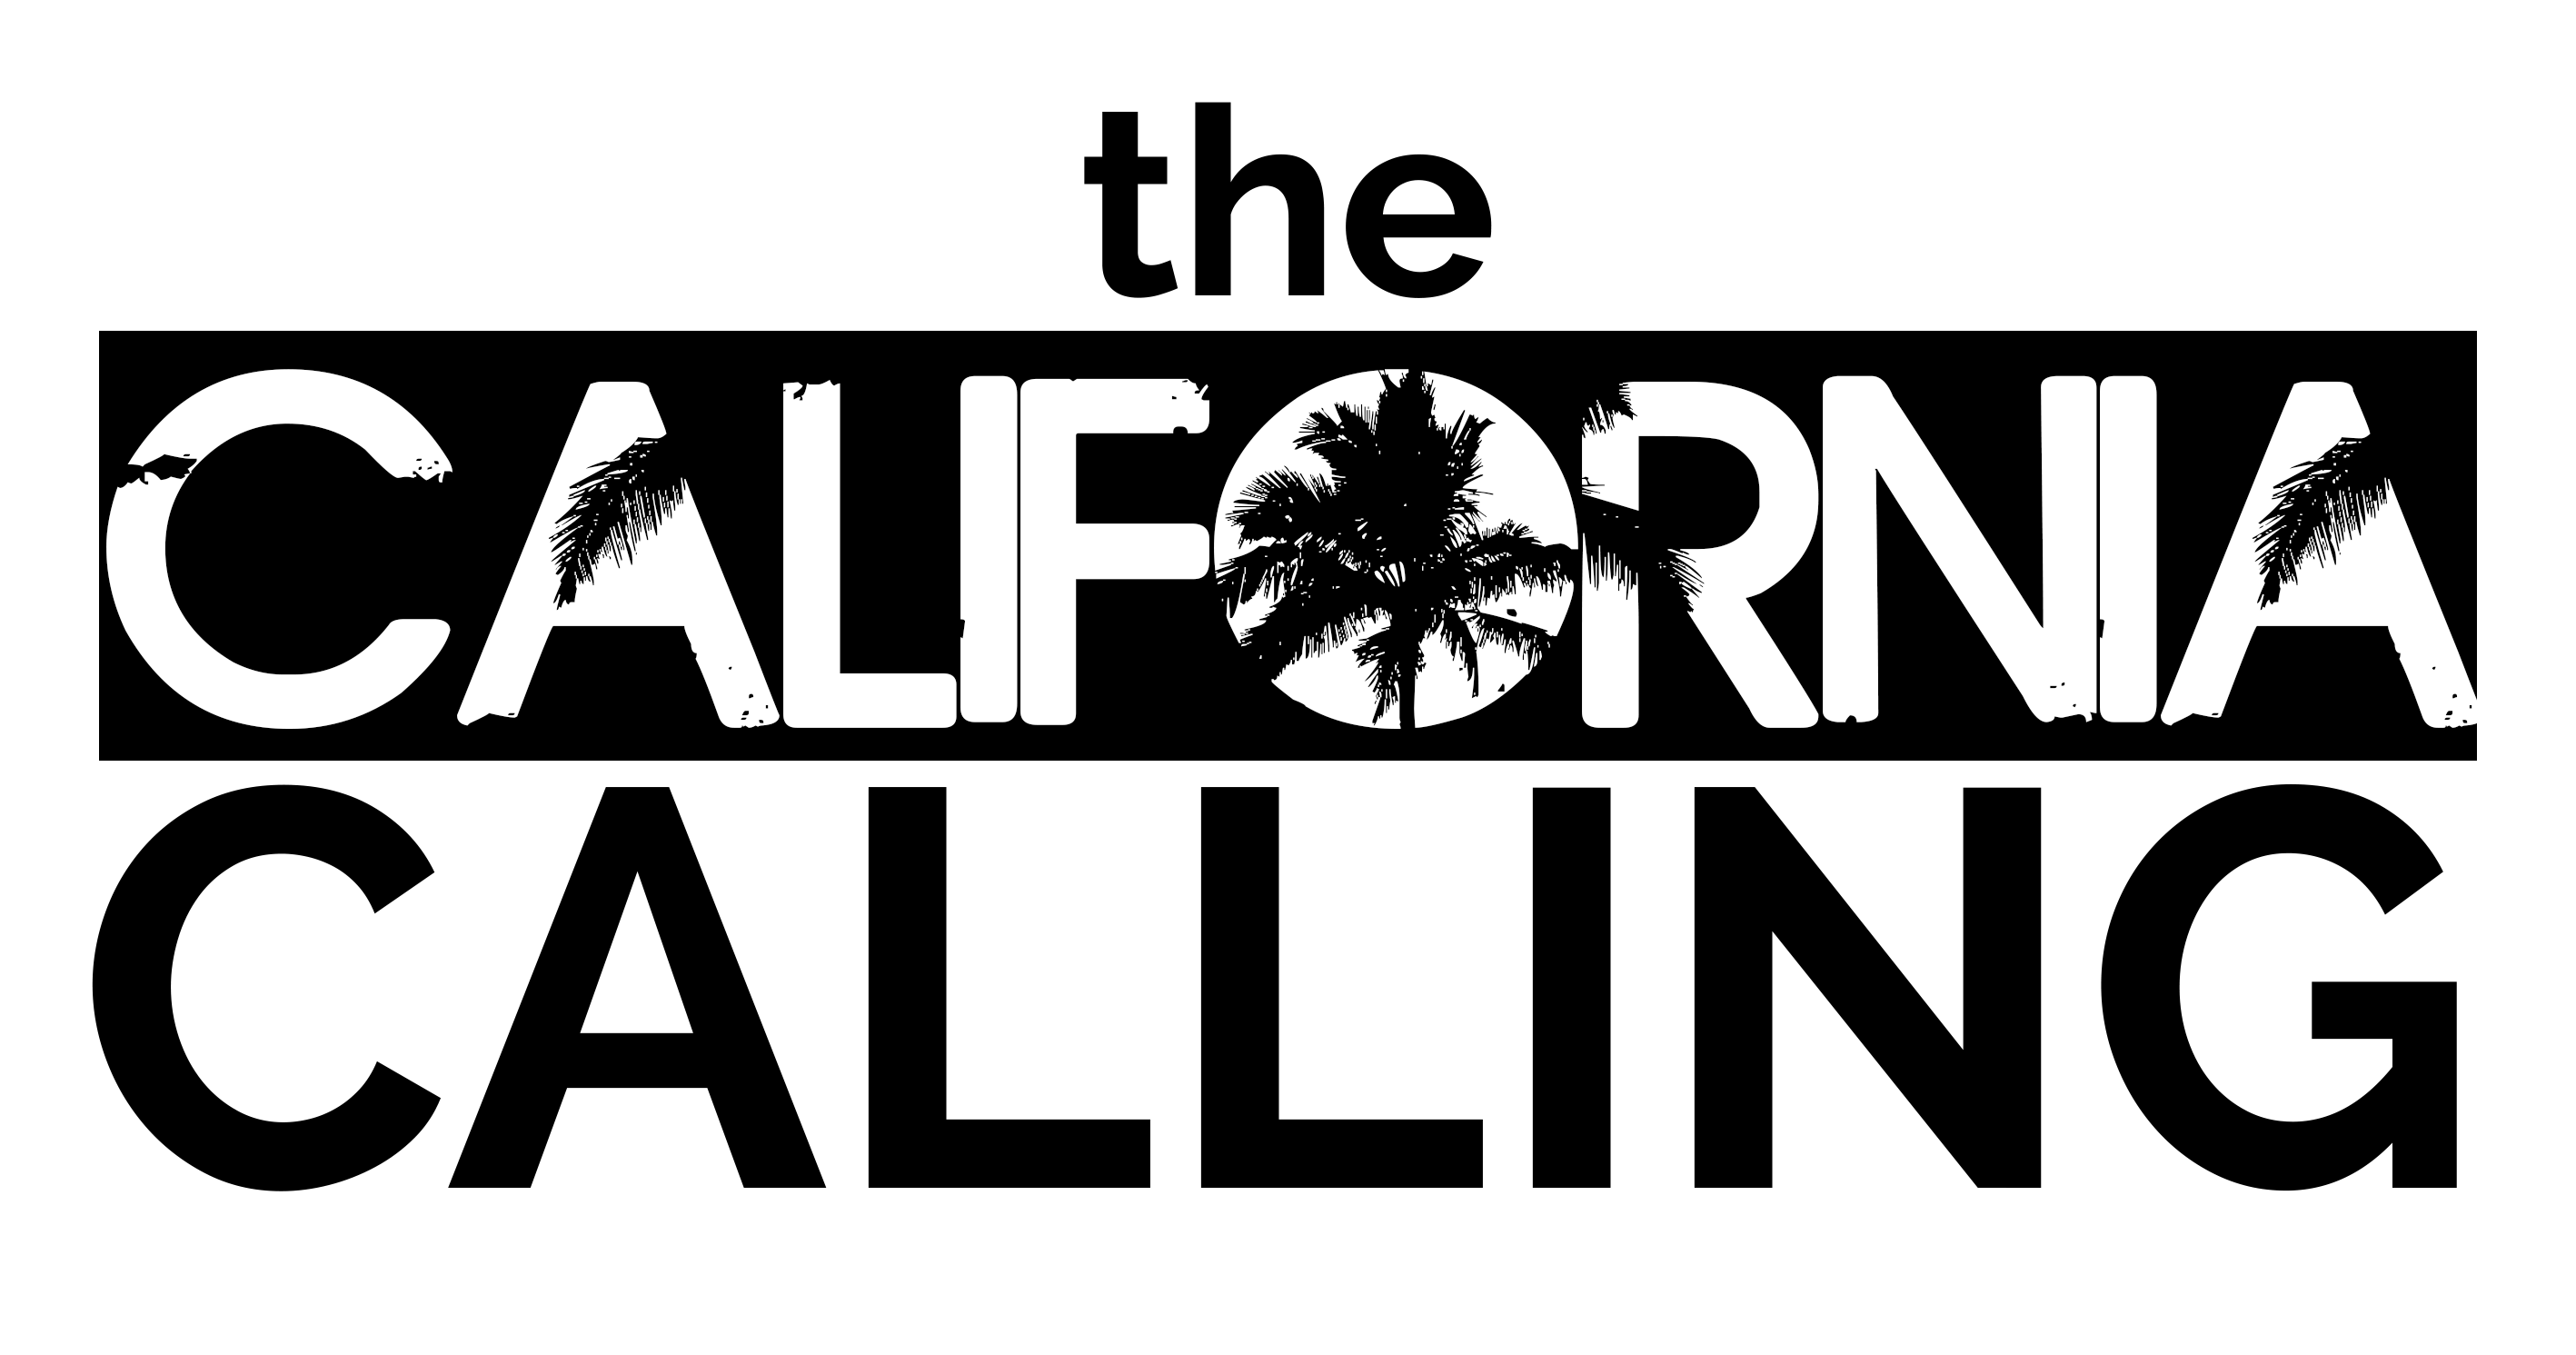 The California Calling